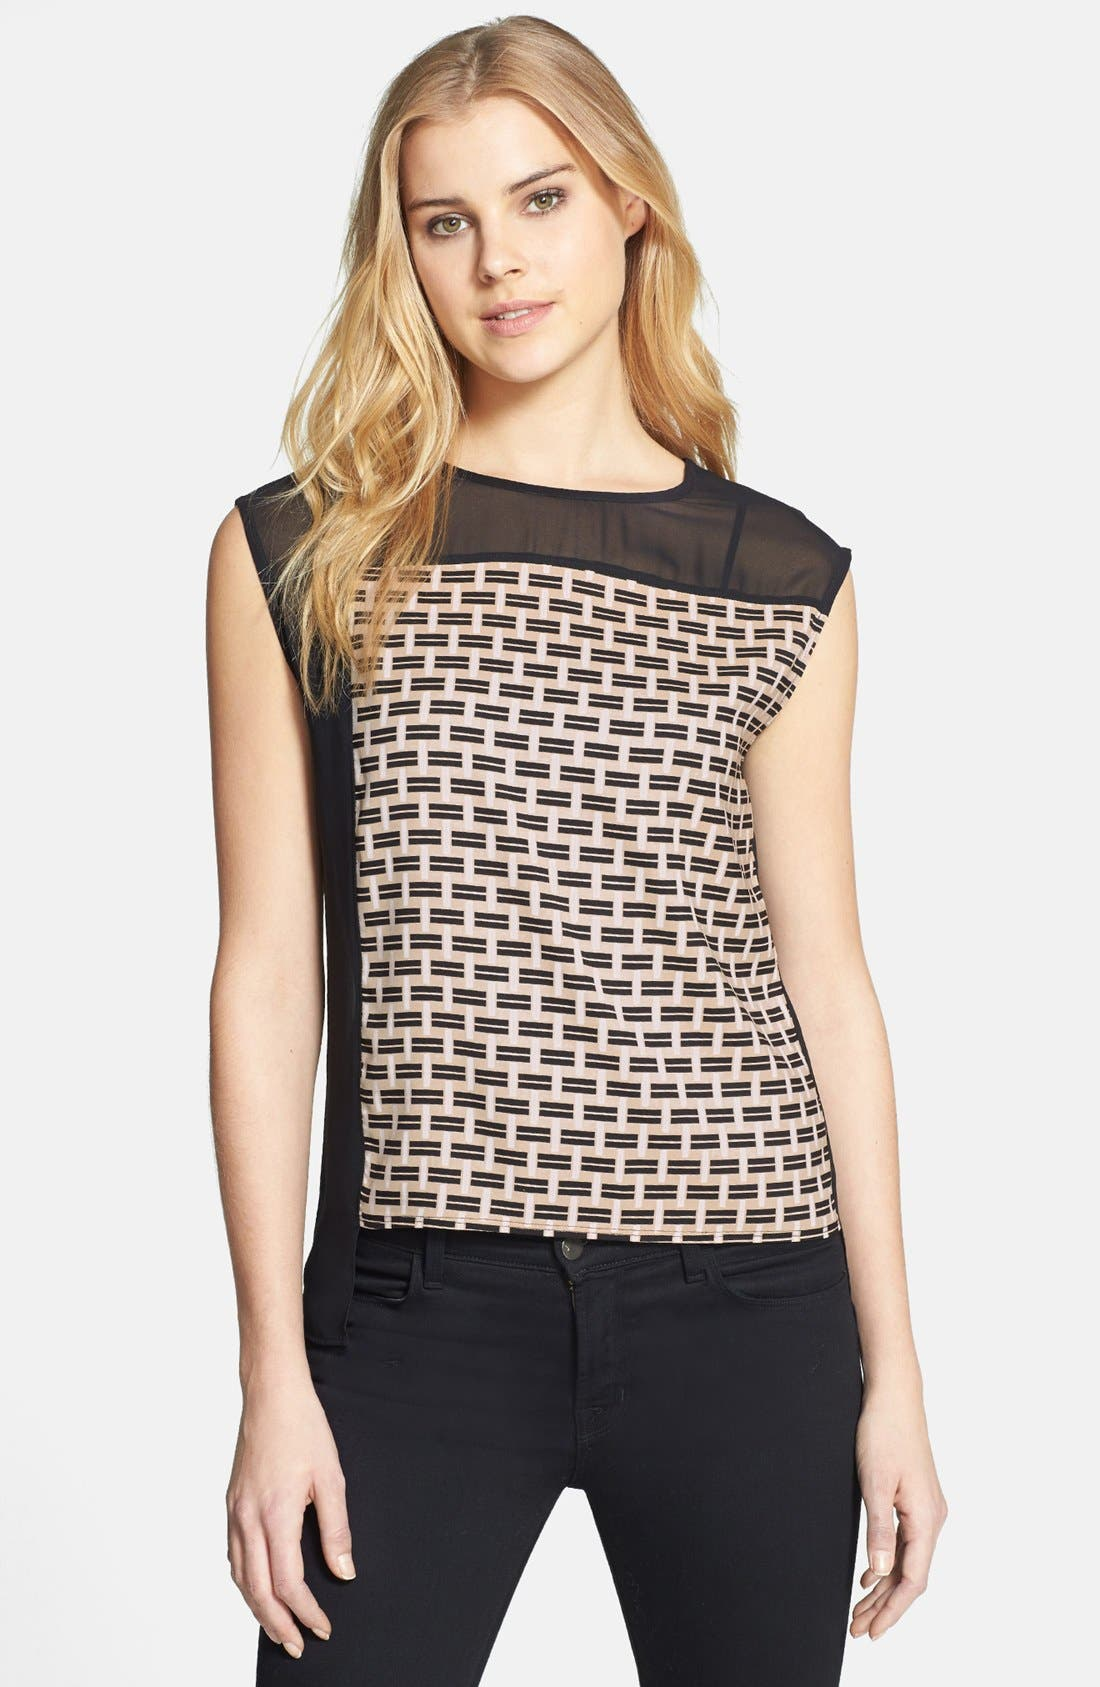 Alternate Image 1 Selected - Vince Camuto 'Graphic Basket' Colorblock Blouse